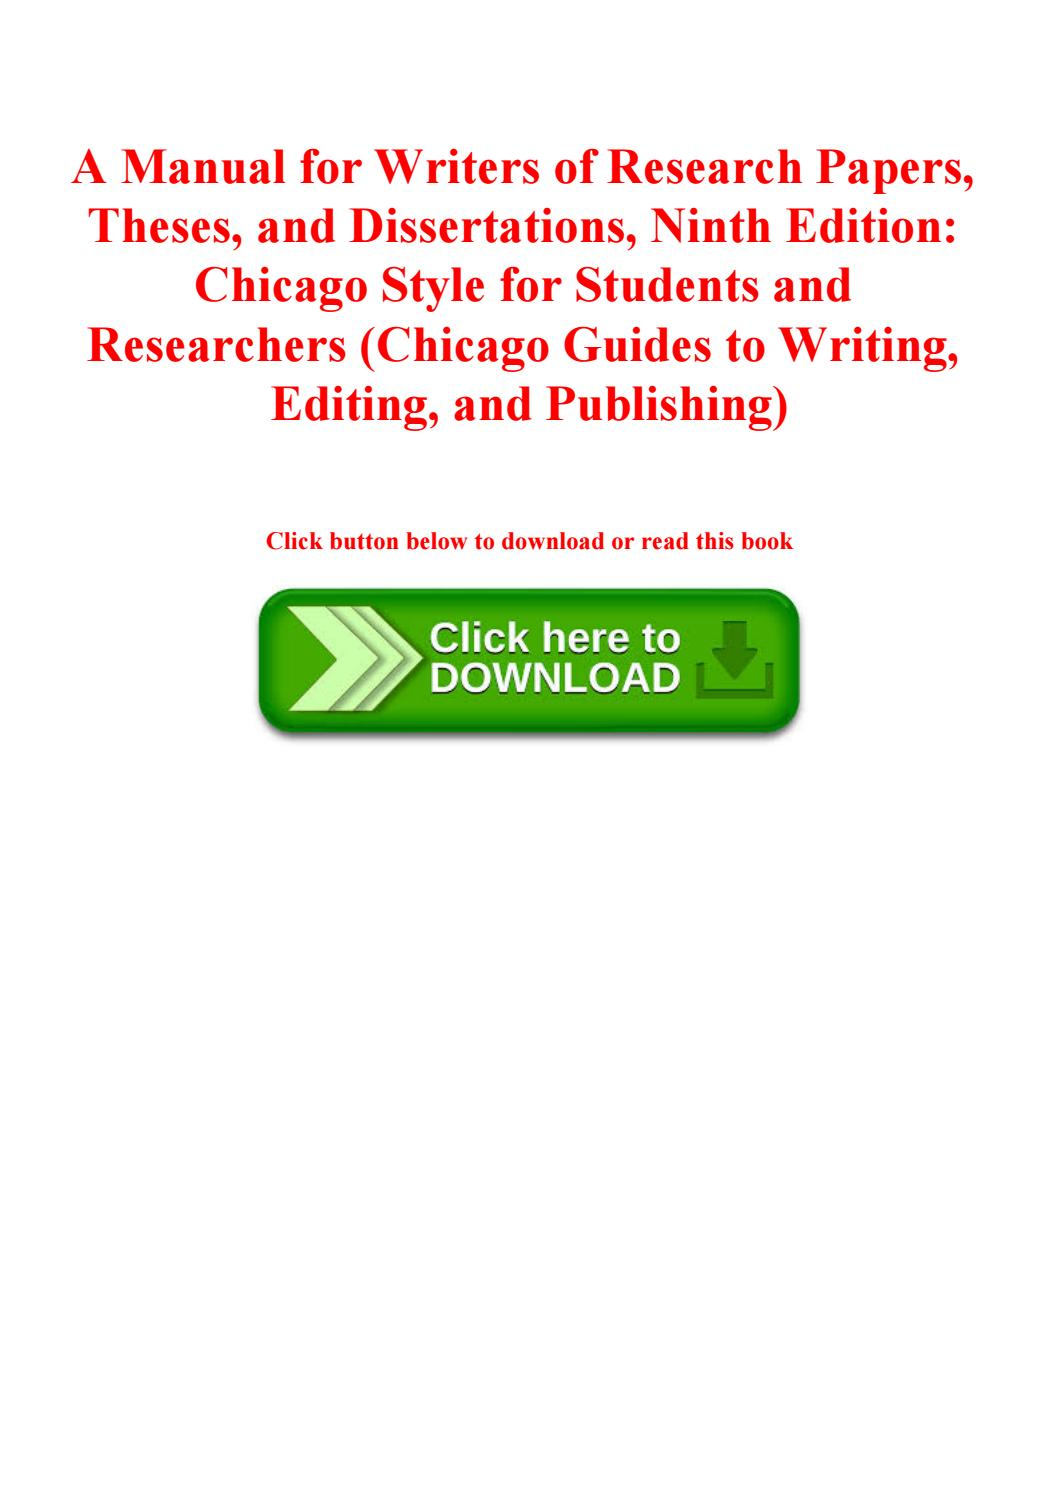 010 Manual For Writers Of Research Papers Theses And Dissertations 9th Edition Pdf Paper Page 1 Wonderful A Full